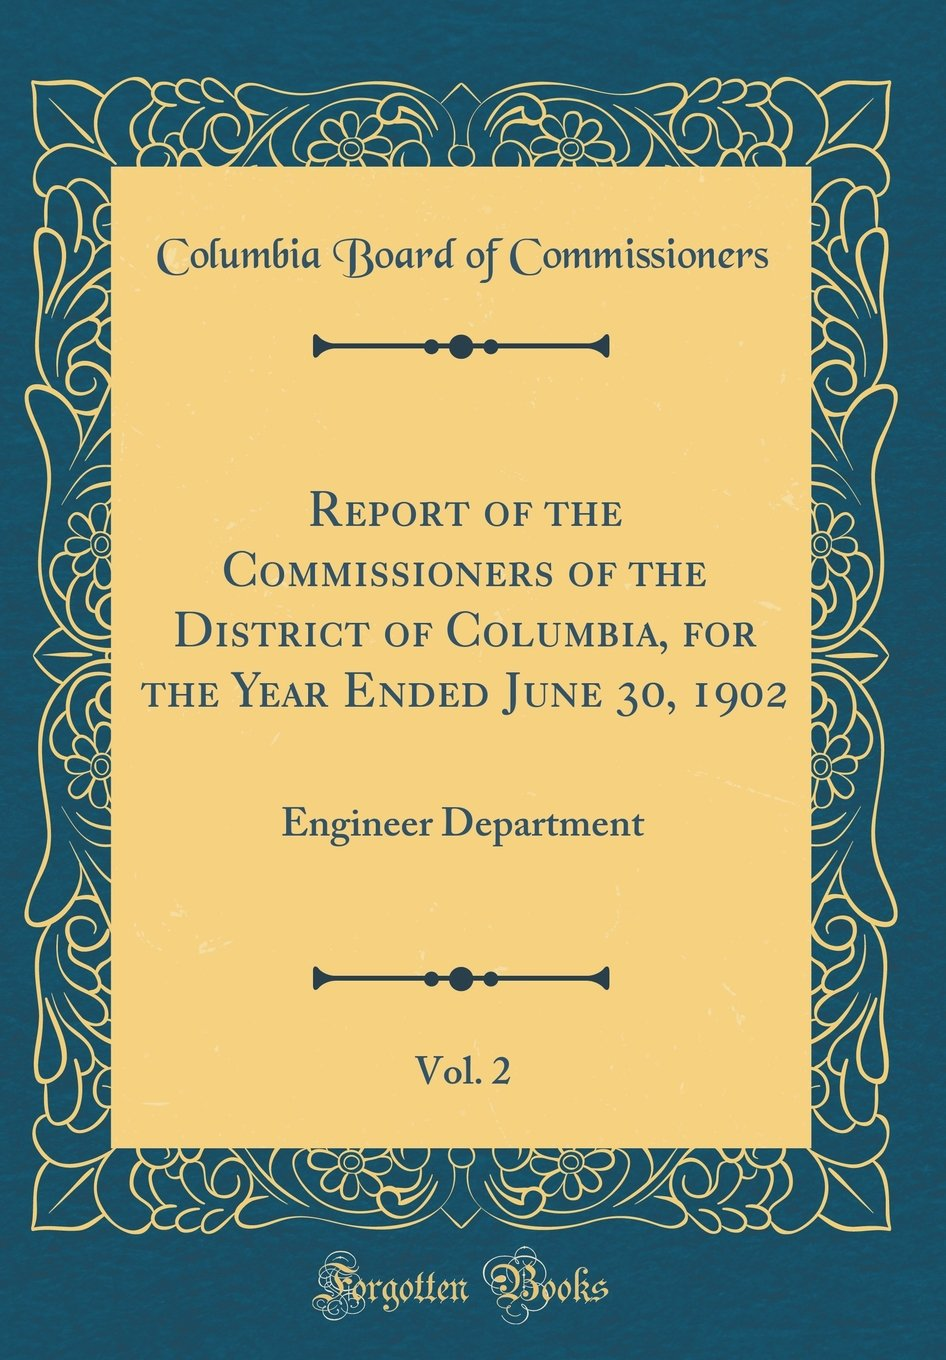 Download Report of the Commissioners of the District of Columbia, for the Year Ended June 30, 1902, Vol. 2: Engineer Department (Classic Reprint) pdf epub